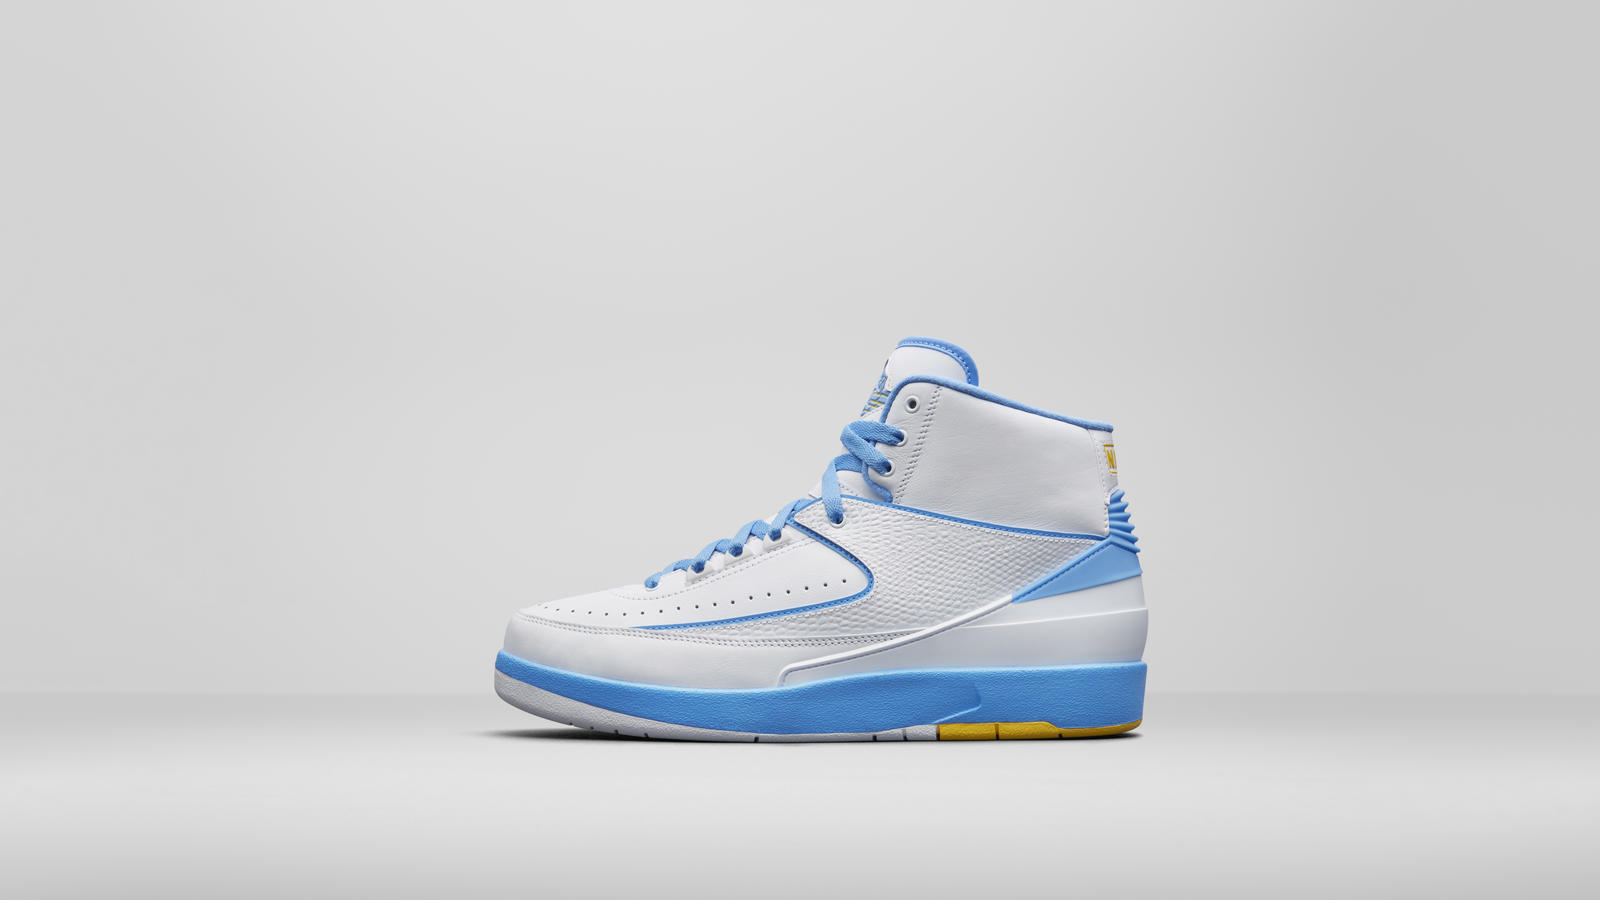 low priced 81086 06a00 The Air Jordan 2 'Melo' Release Date is Official - WearTesters